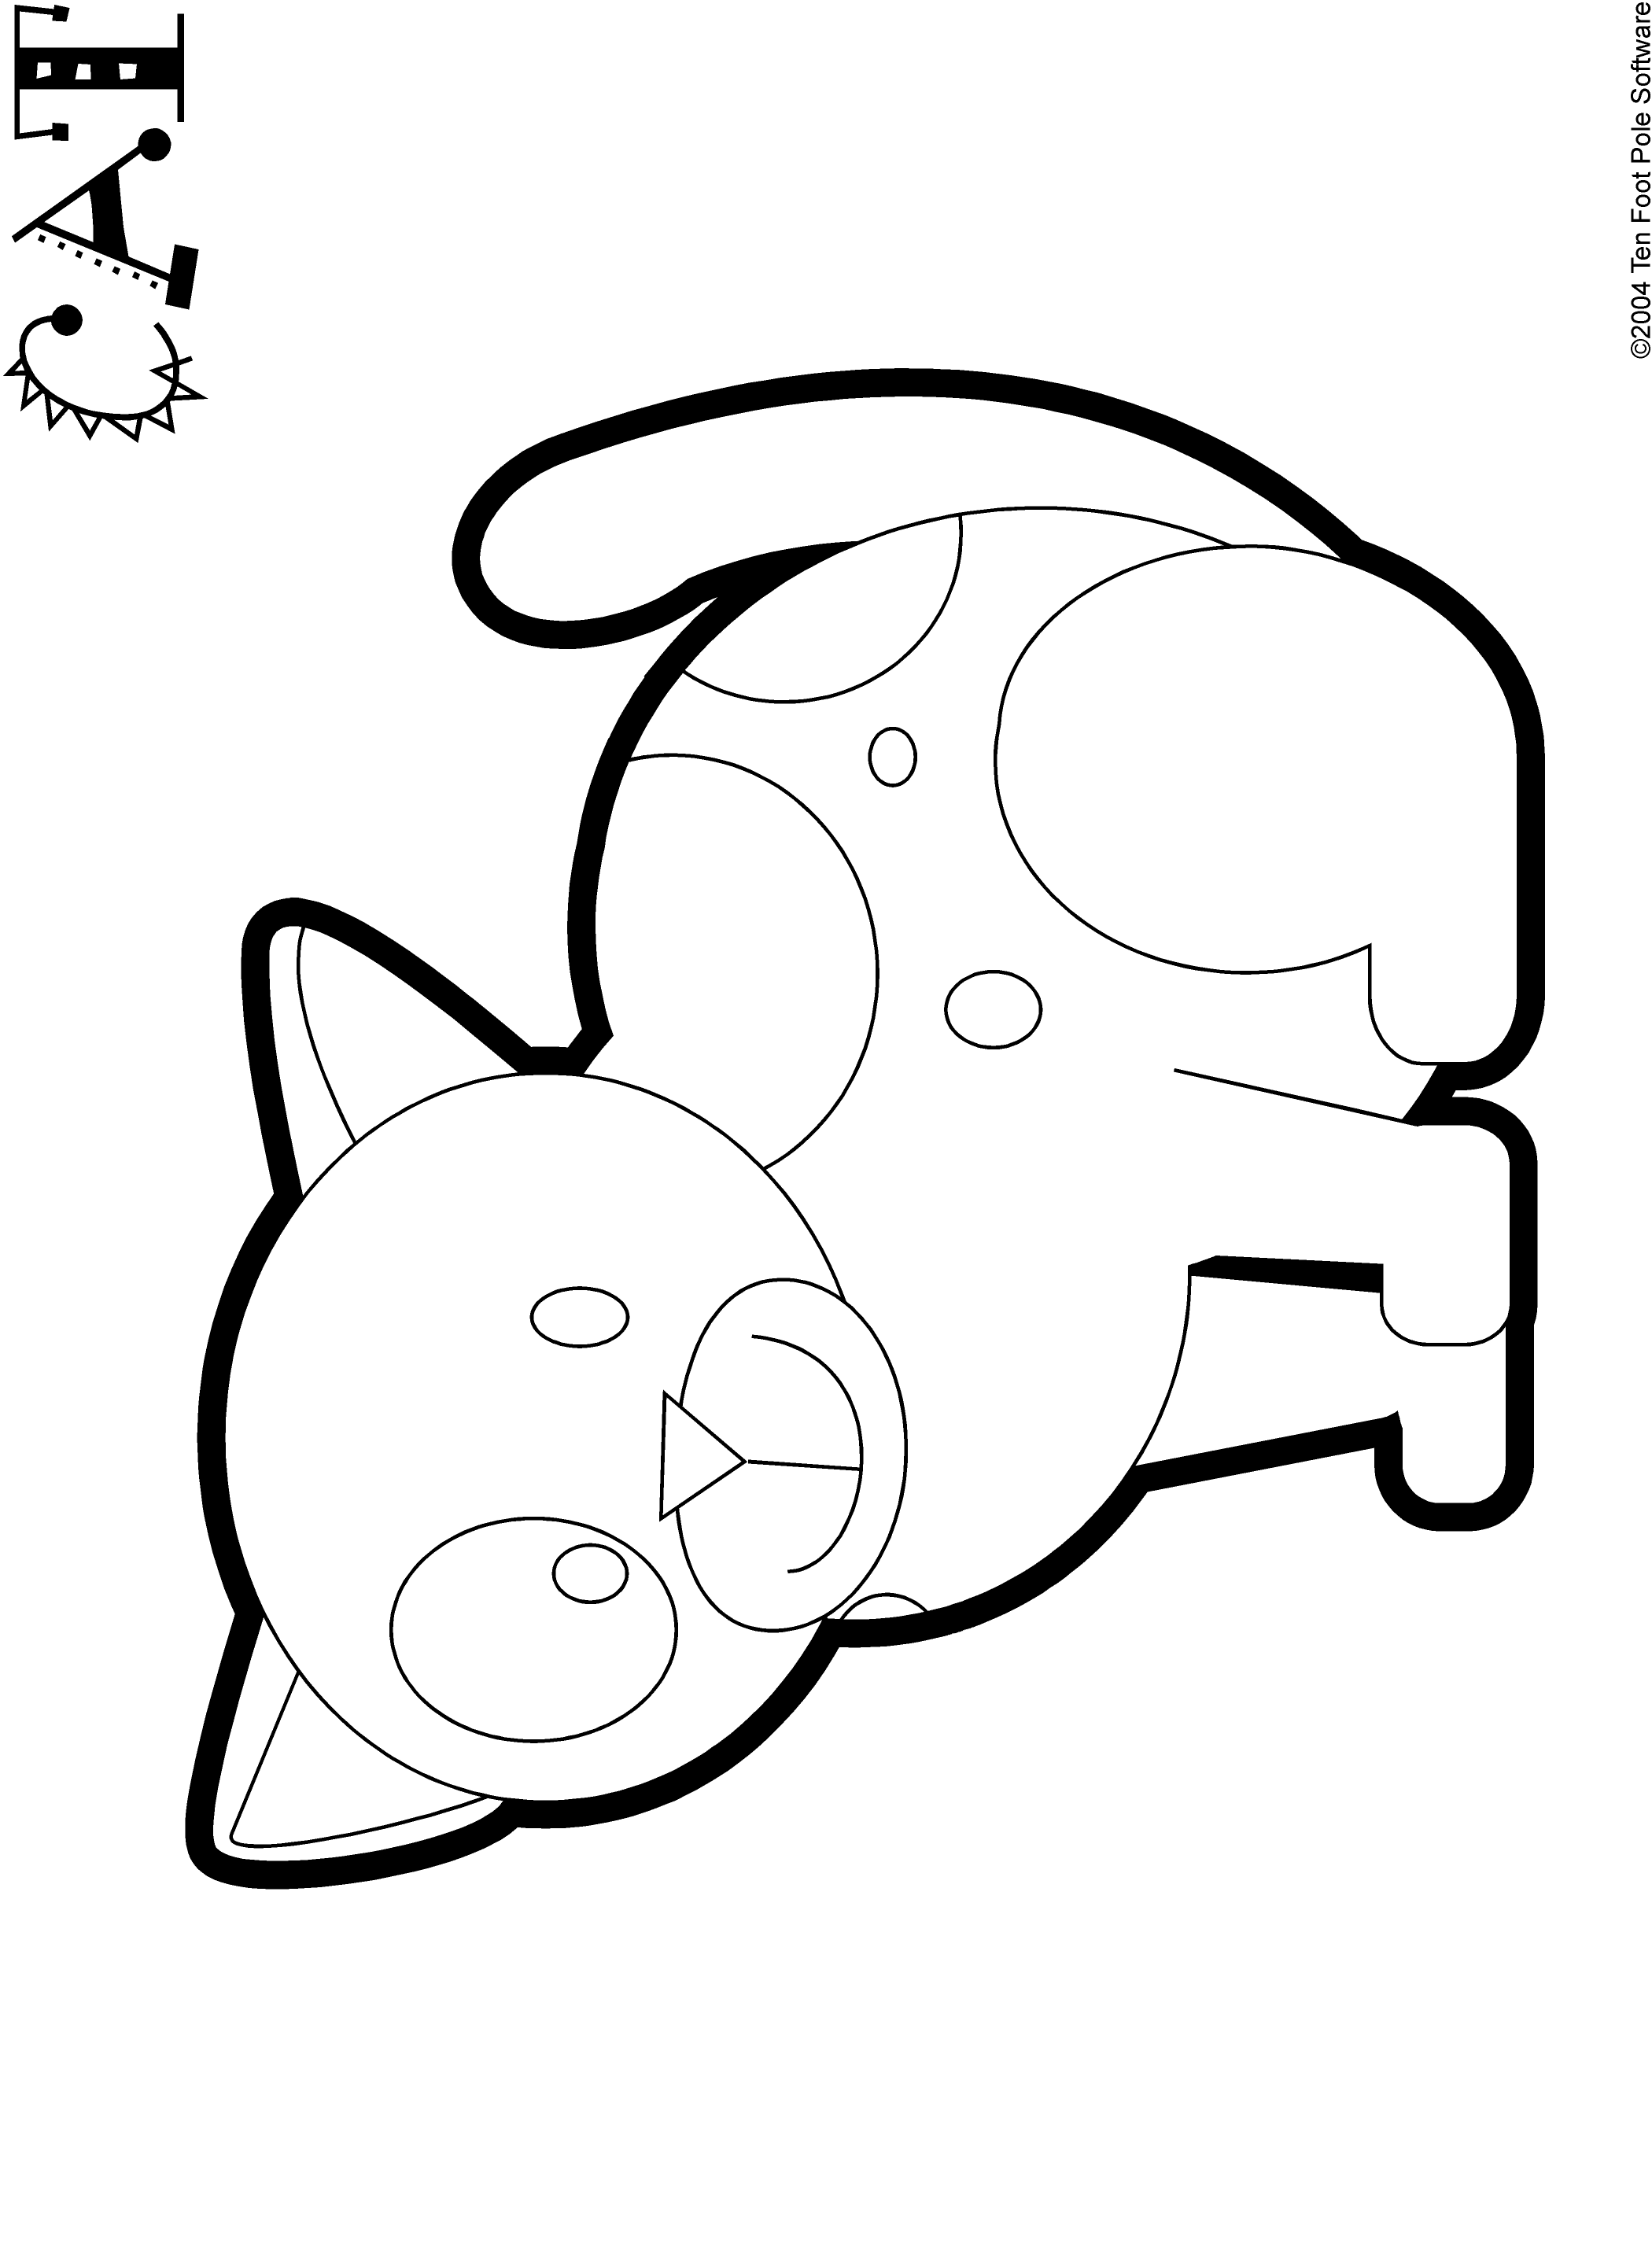 Coloring book software - Coloring Book Pages